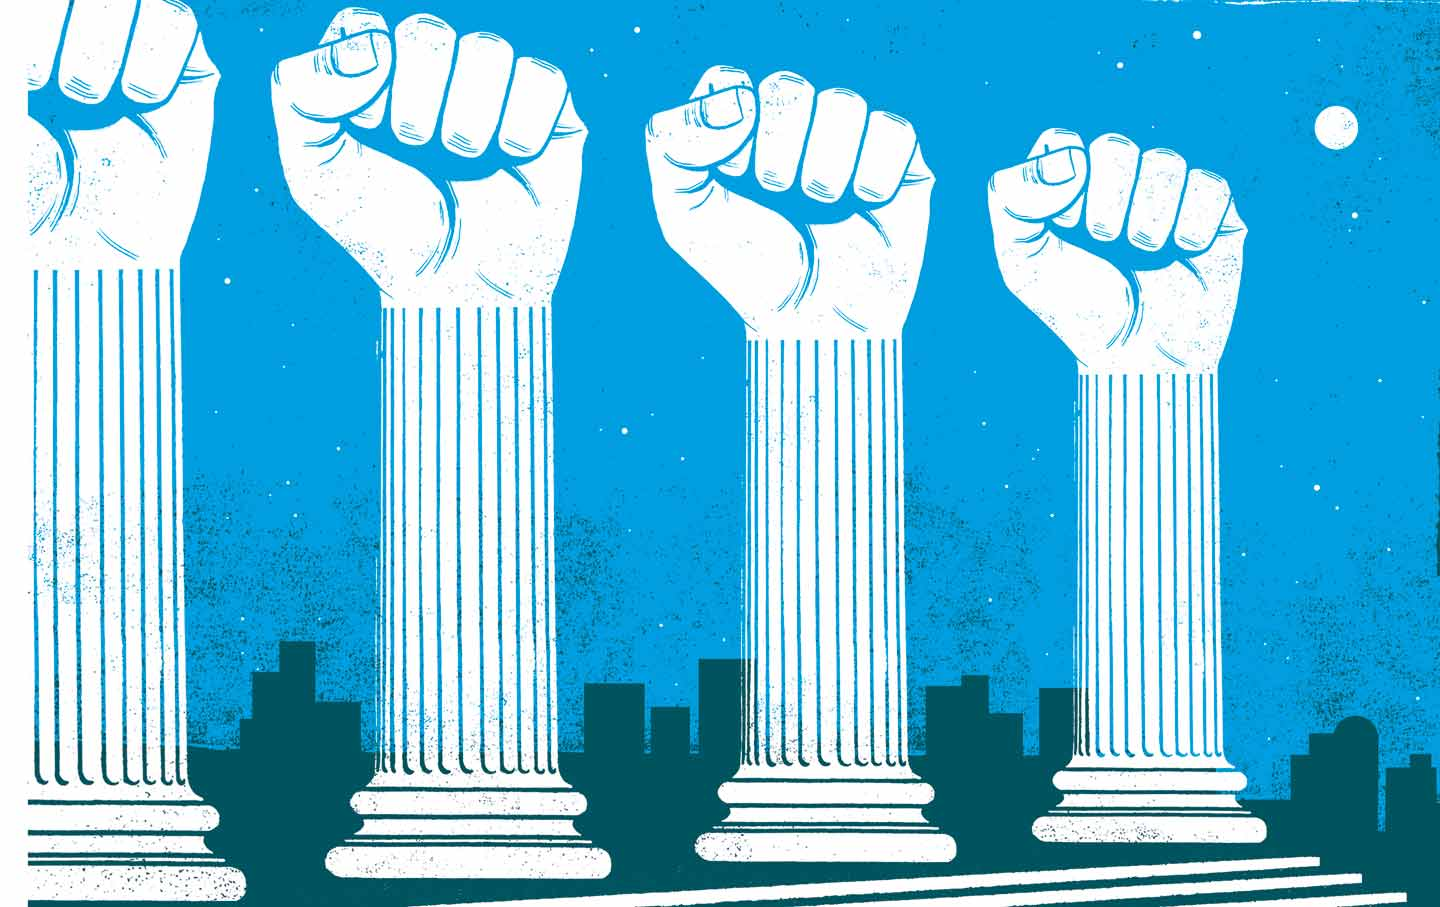 how to learn about democracy and justice